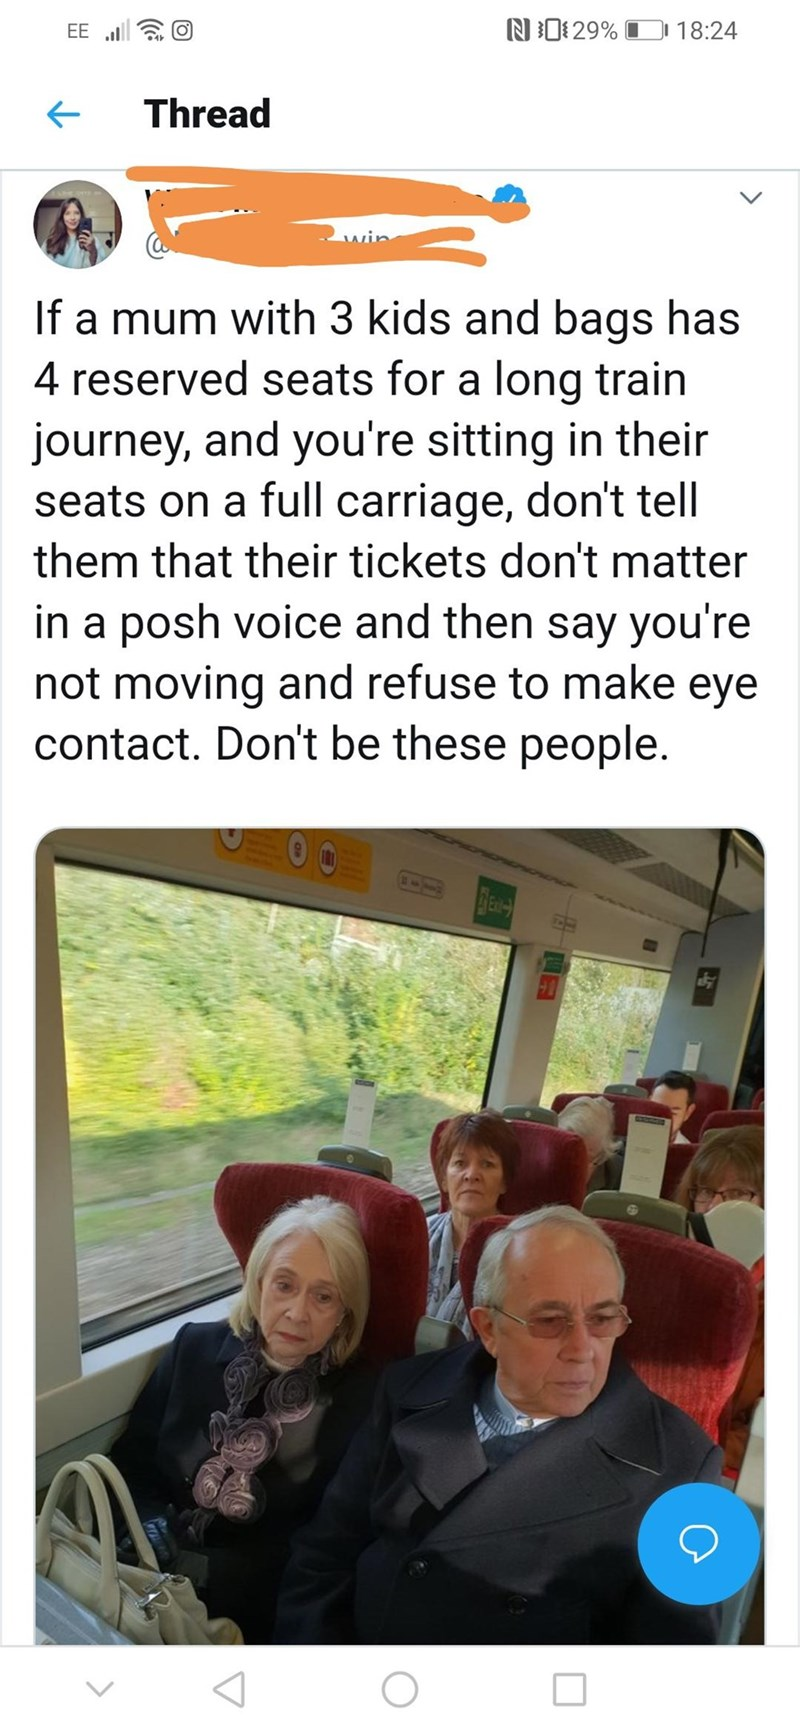 Text - N29% 18:24 EE Thread If a mum with 3 kids and bags has 4 reserved seats for a long train journey, and you're sitting in their seats on a full carriage, don't tell them that their tickets don't matter in a posh voice and then say you're not moving and refuse to make eye contact. Don't be these people.